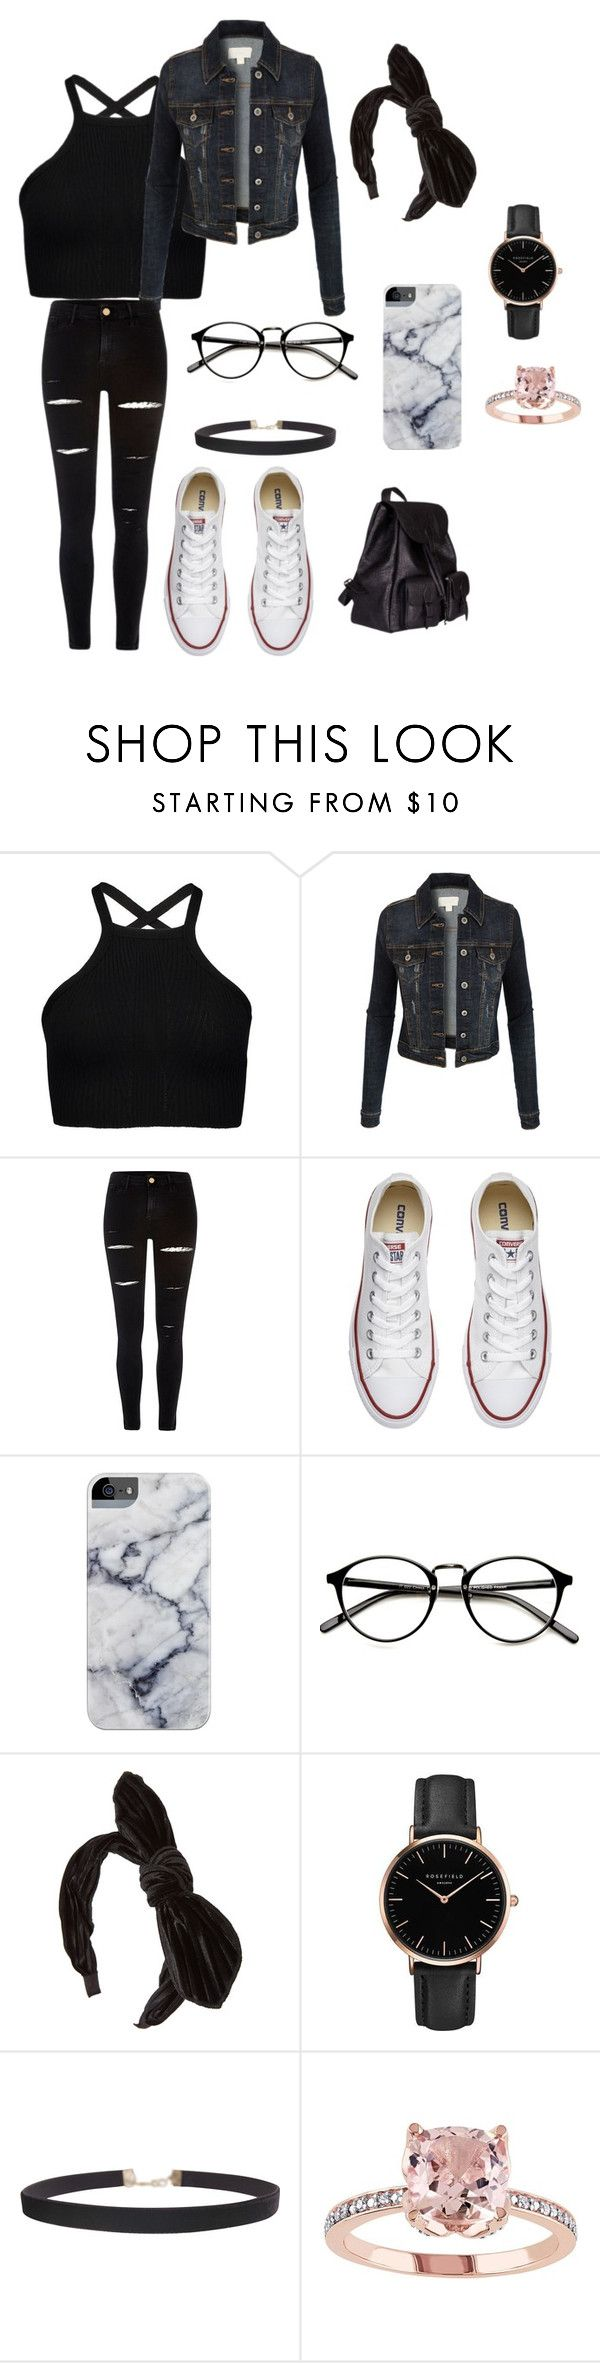 """""""Everthing!!!!"""" by malfoy-granger-weasly ❤ liked on Polyvore featuring LE3NO, River Island, Converse, Topshop, Humble Chic and Yves Saint Laurent"""